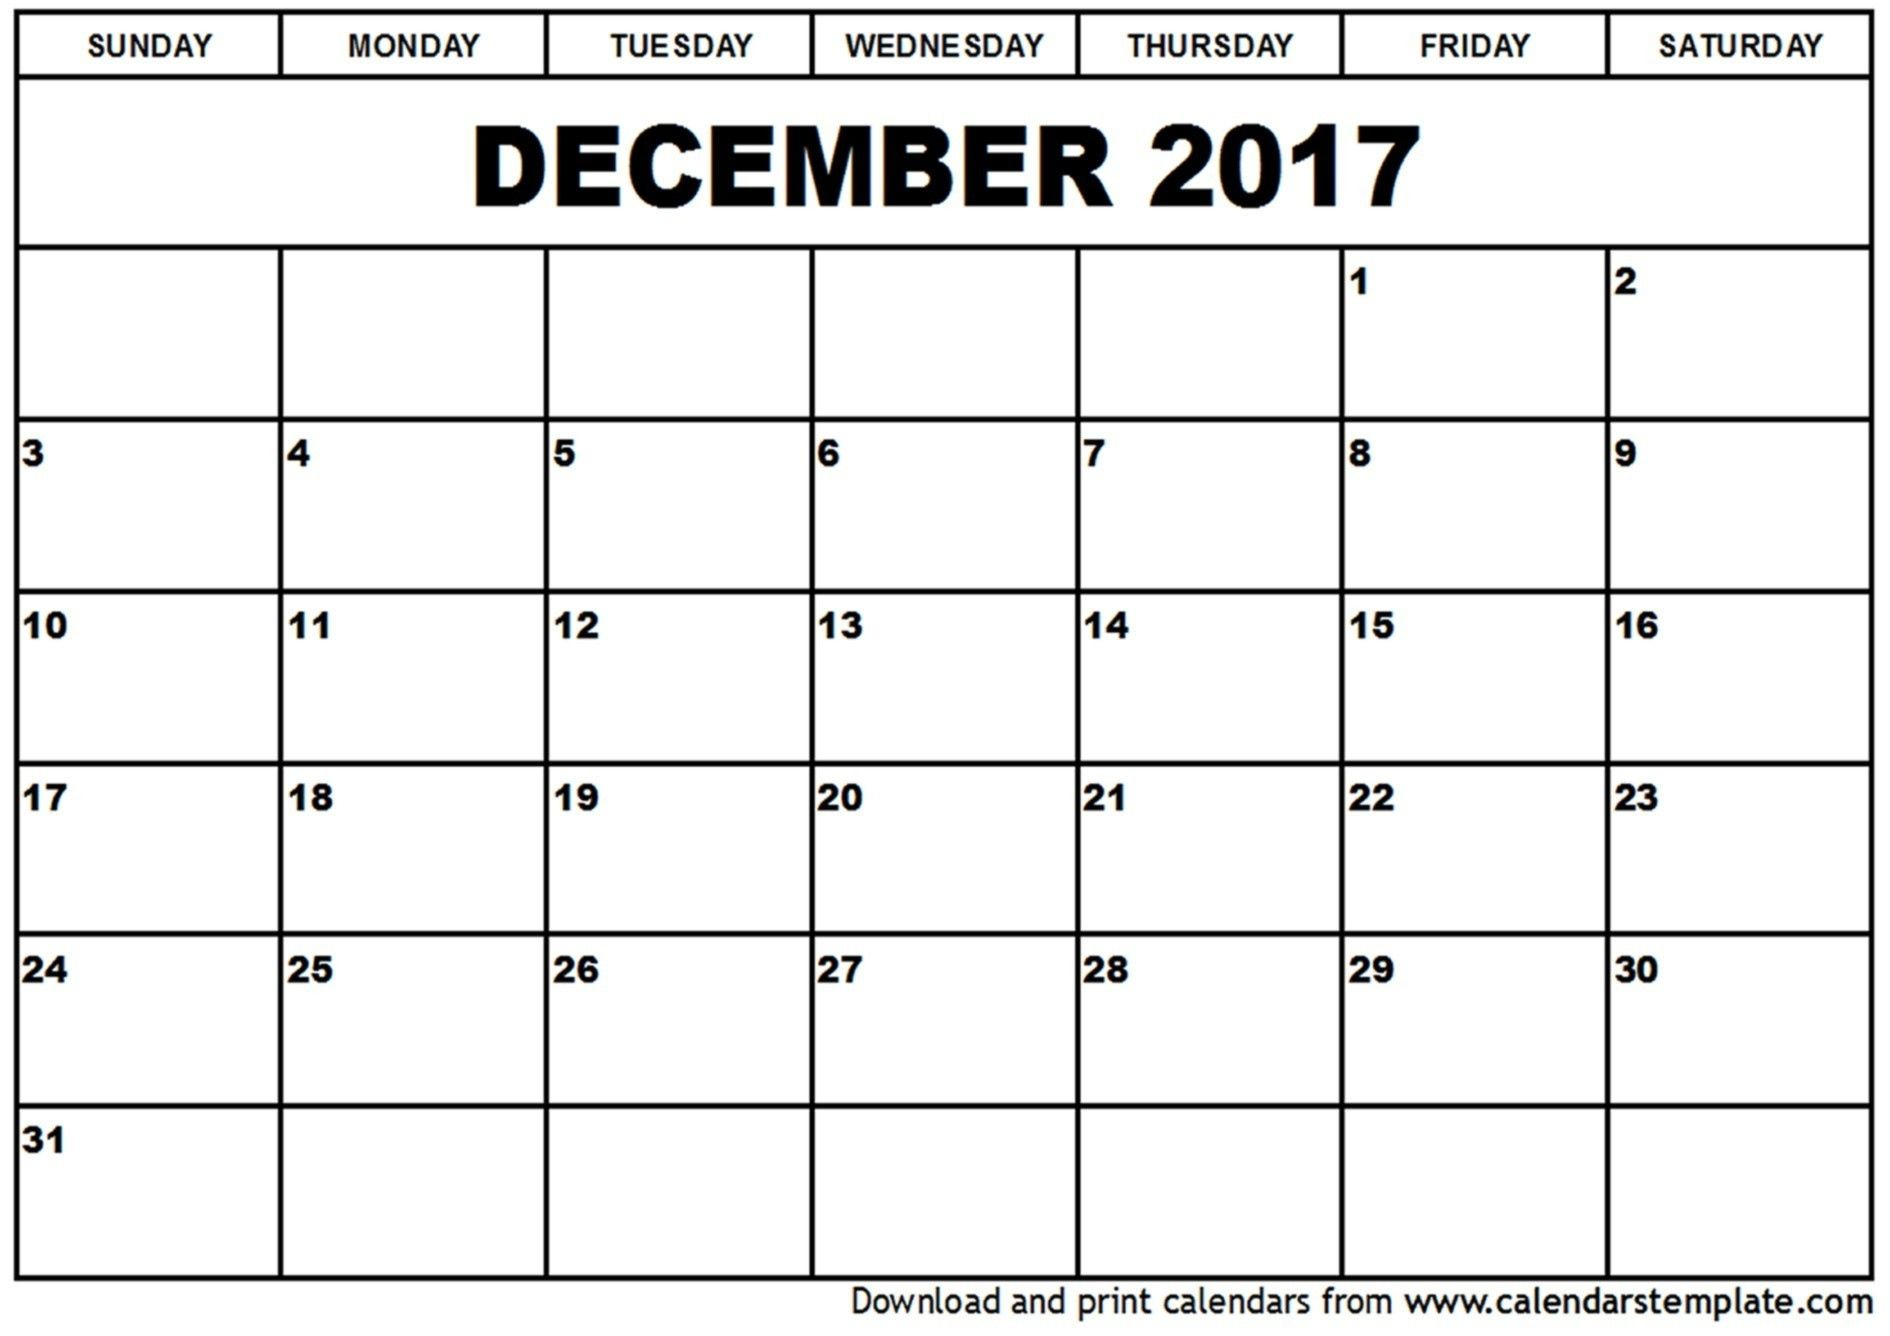 Monthly Calendar You Can Type In In 2020 | Free Calendar